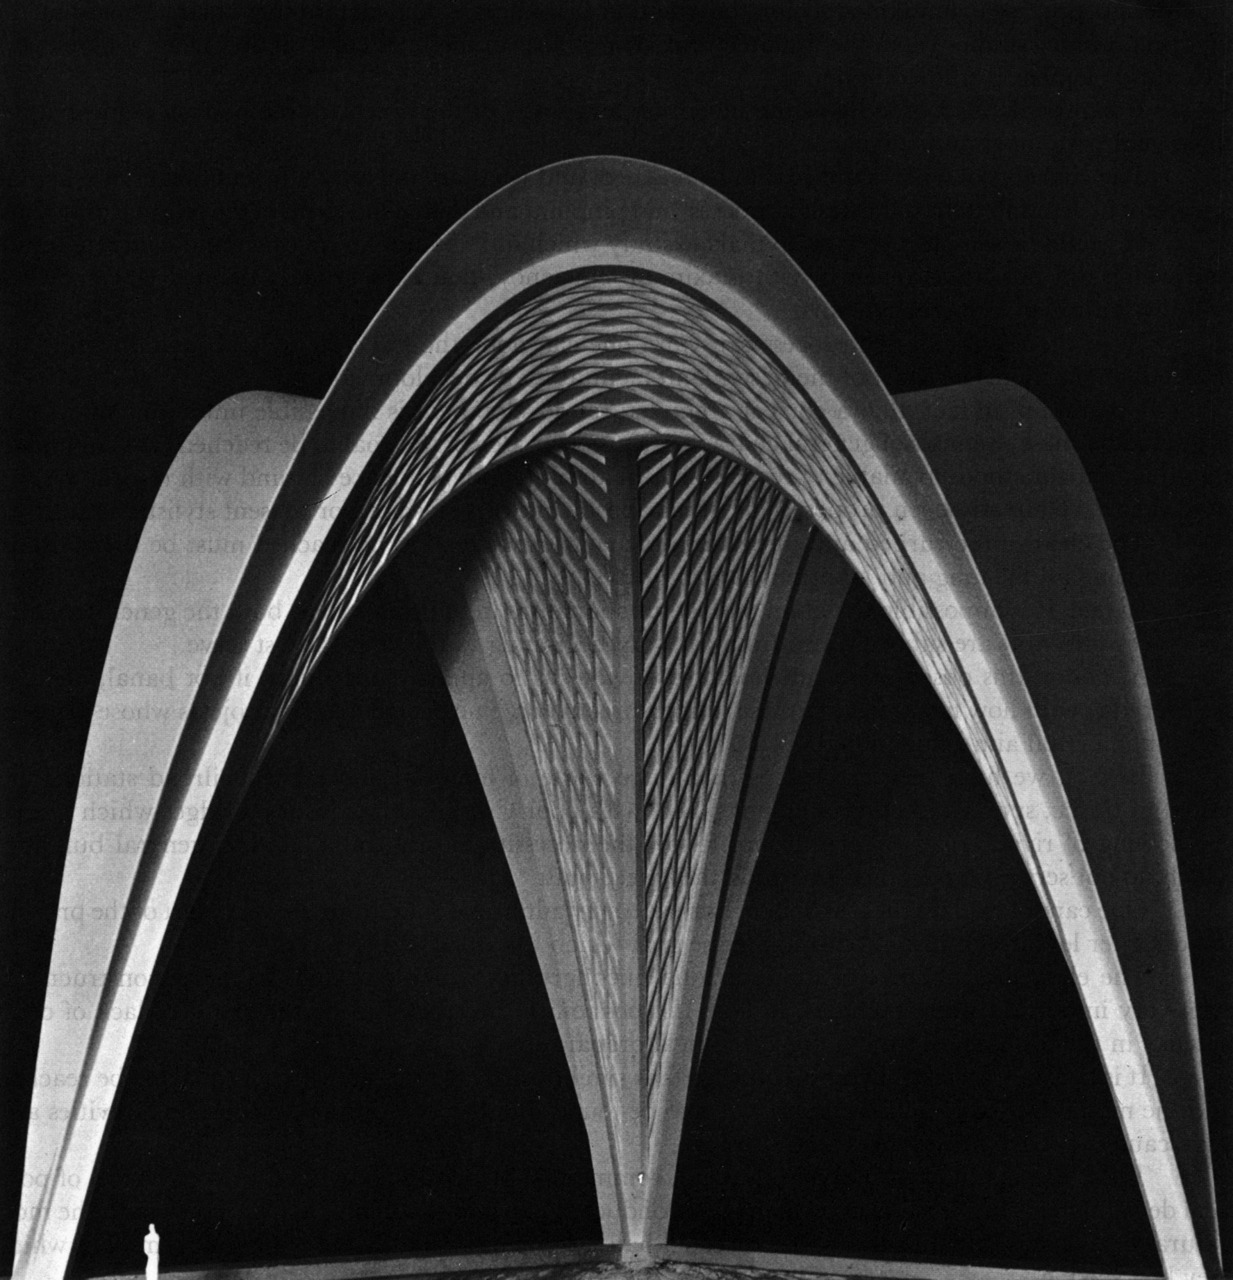 archiveofaffinities:  Pier Luiji Nervi, Roof Structure: Three Parabolic Vaults, 100' High, Spanning 115', 1959-61